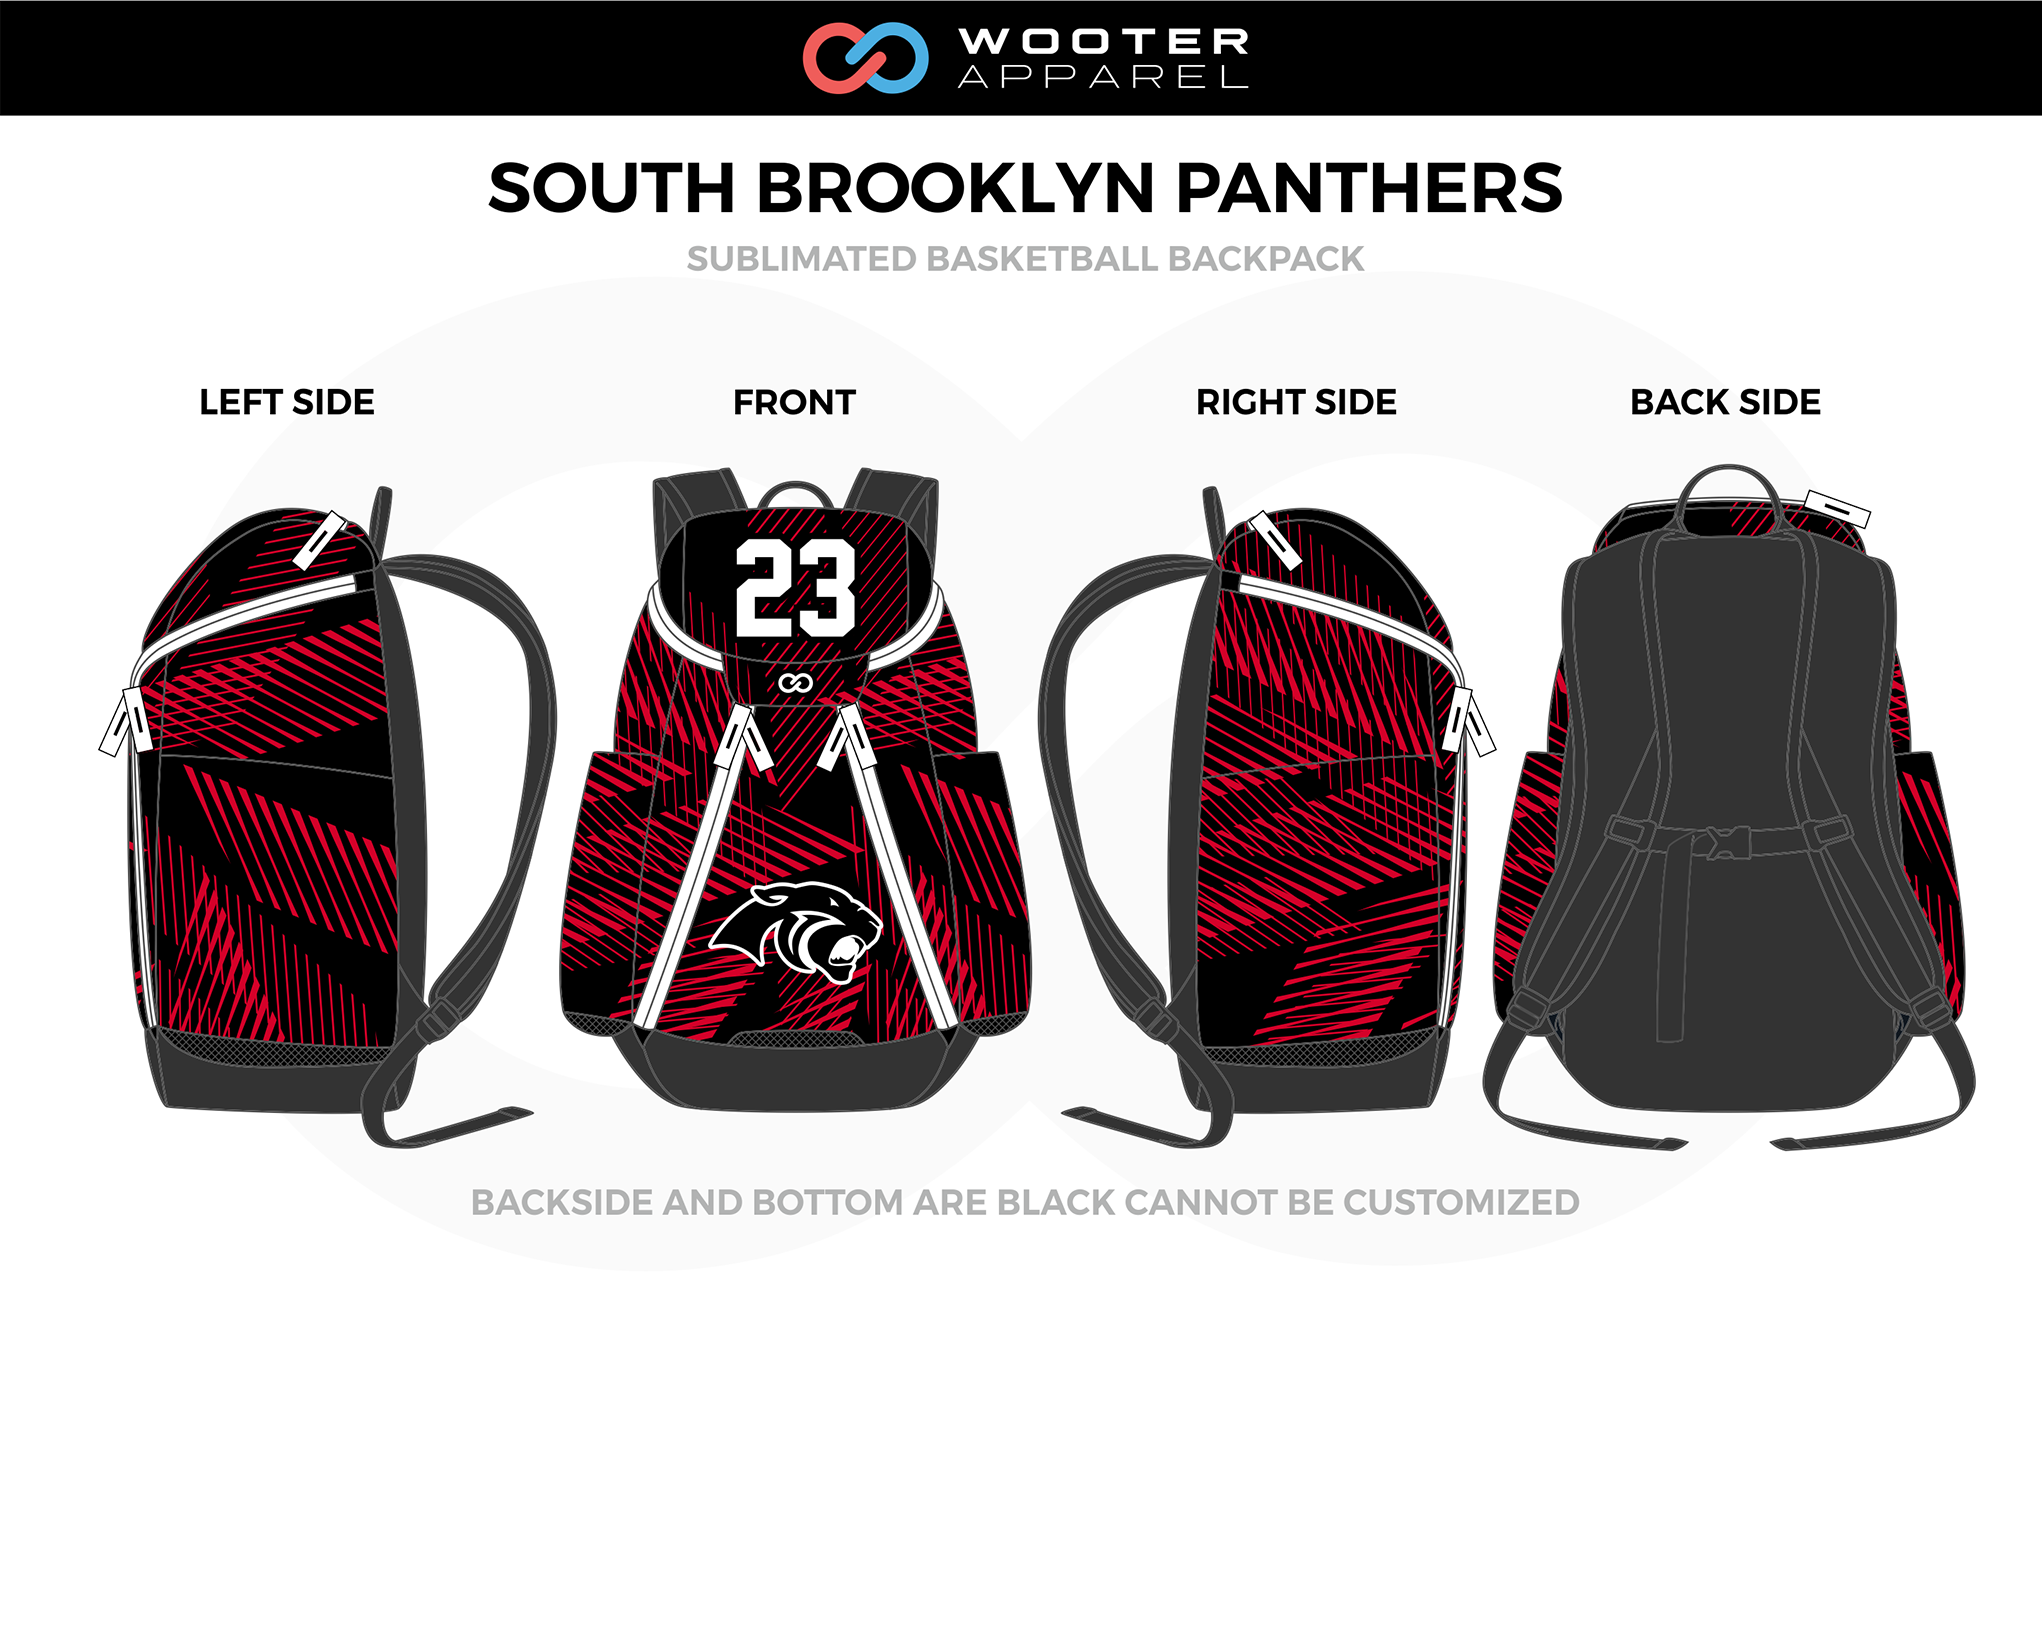 SOUTH BROOKLYN PANTHERS Red Black Gray White Basketball Backpack